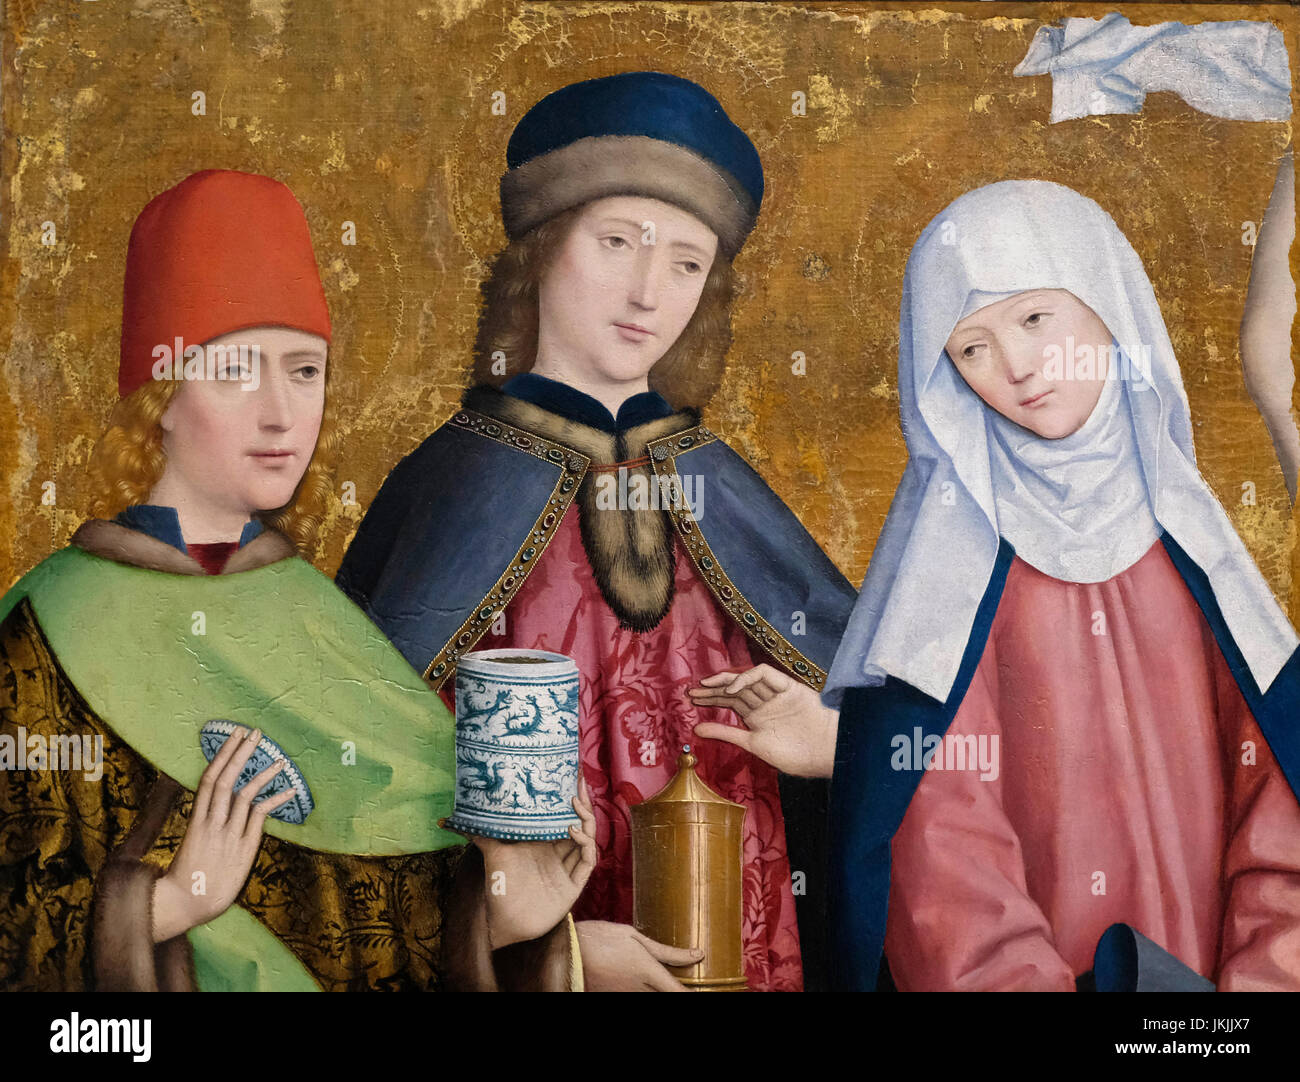 Saints Cosmos and Damian and the Virgin, circa 1470 - Master of Liesborn - Stock Image